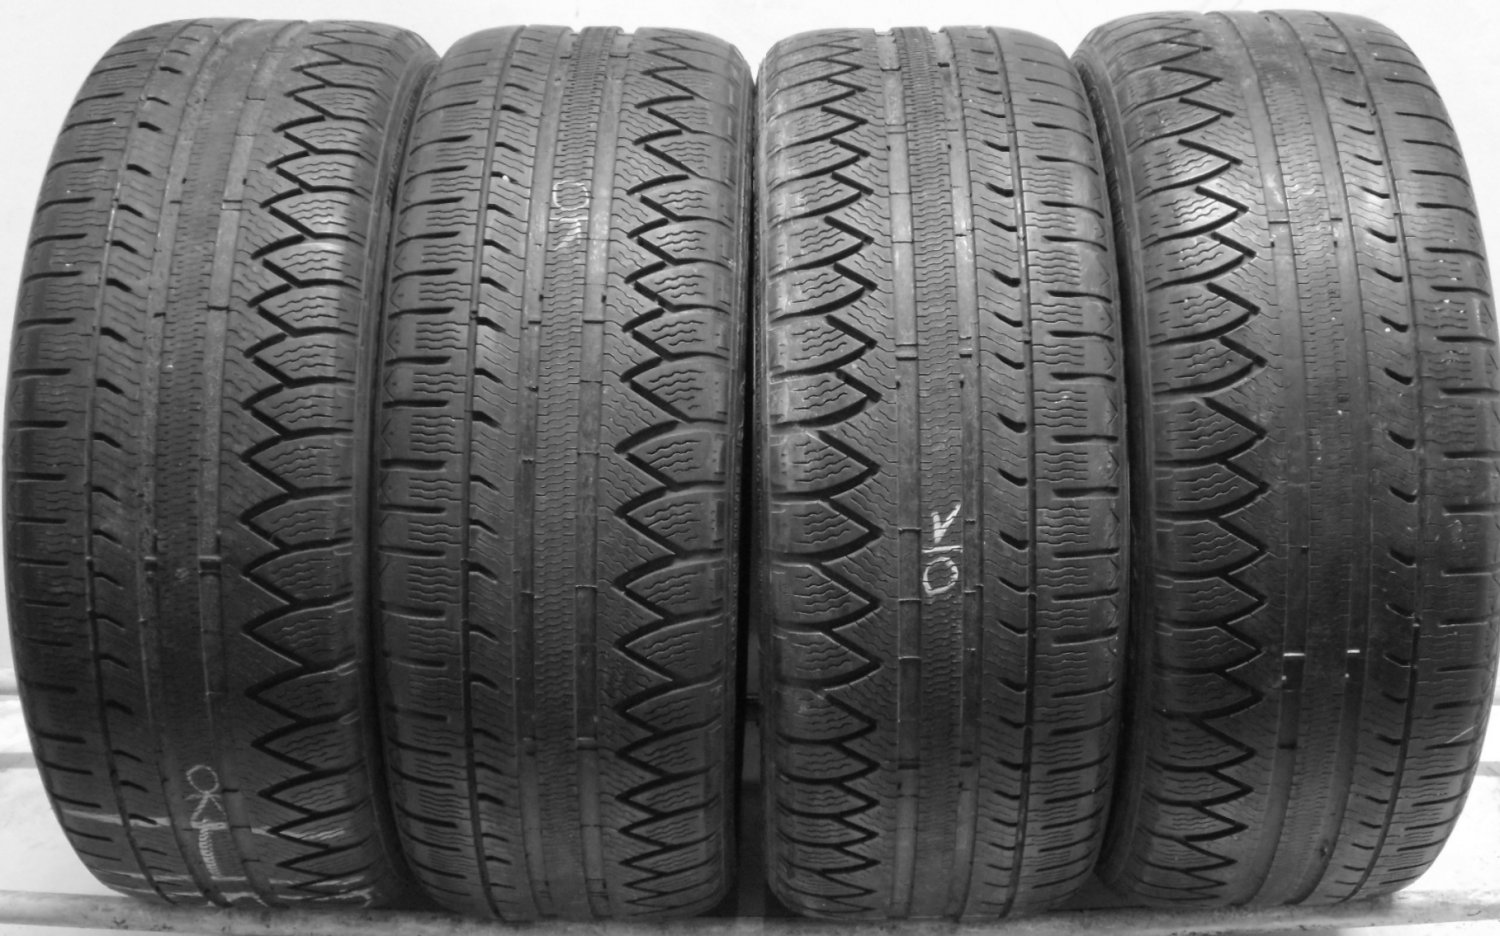 4 2255017 Michelin 225 50 17 Part Worn Car Tyres WINTER SNOW PA3 Alpin x4 Four 4mm to 5mm